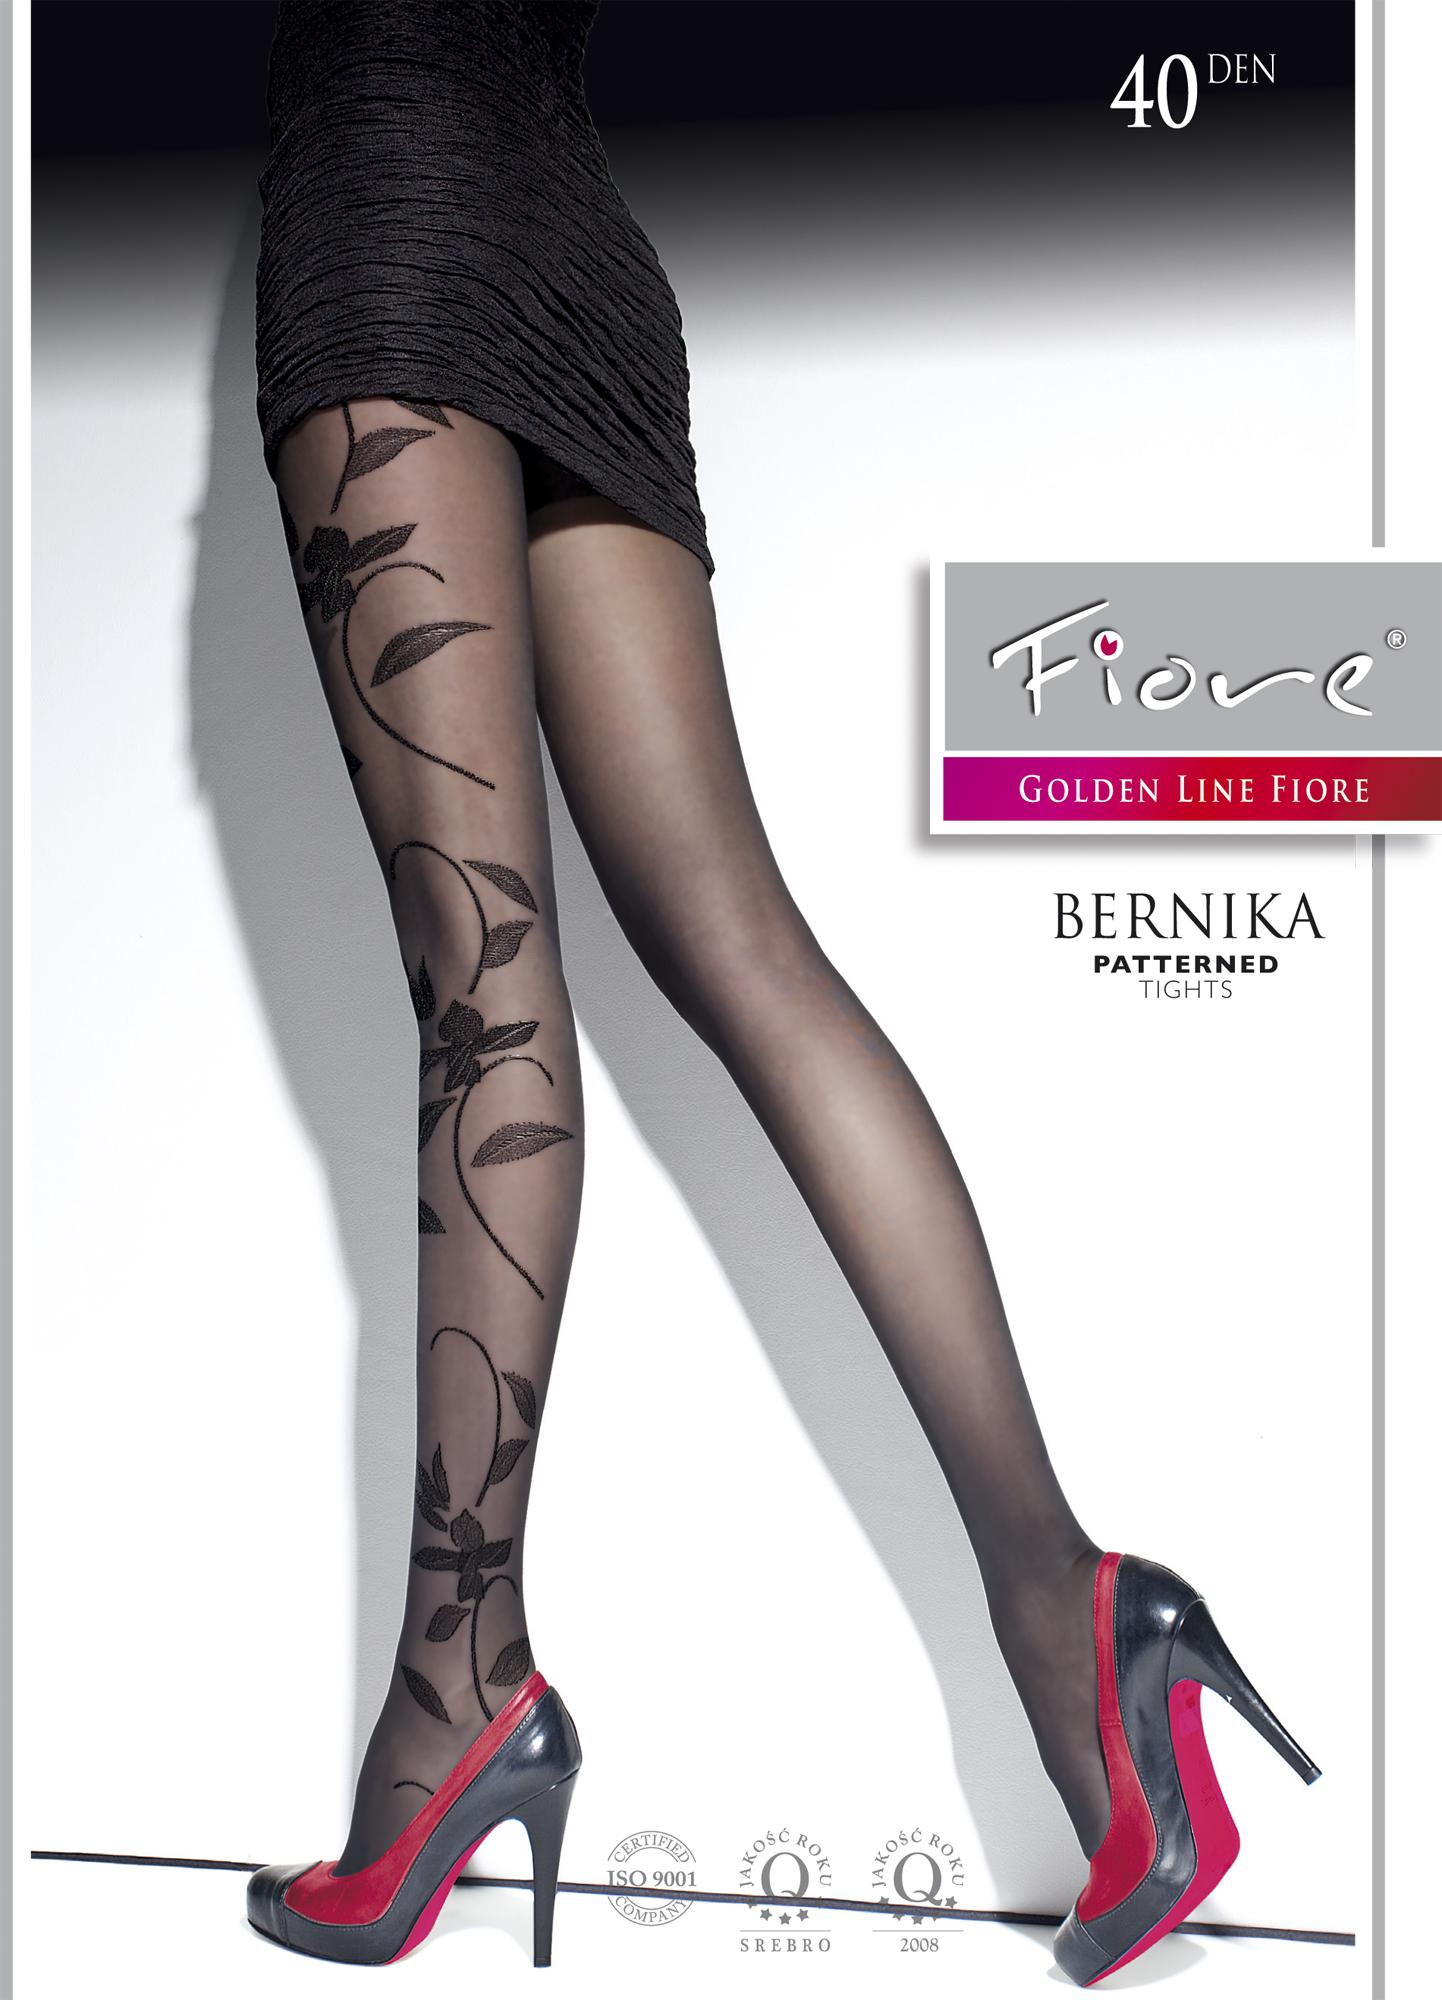 BERNIKA 40 den by Fiore floral tights